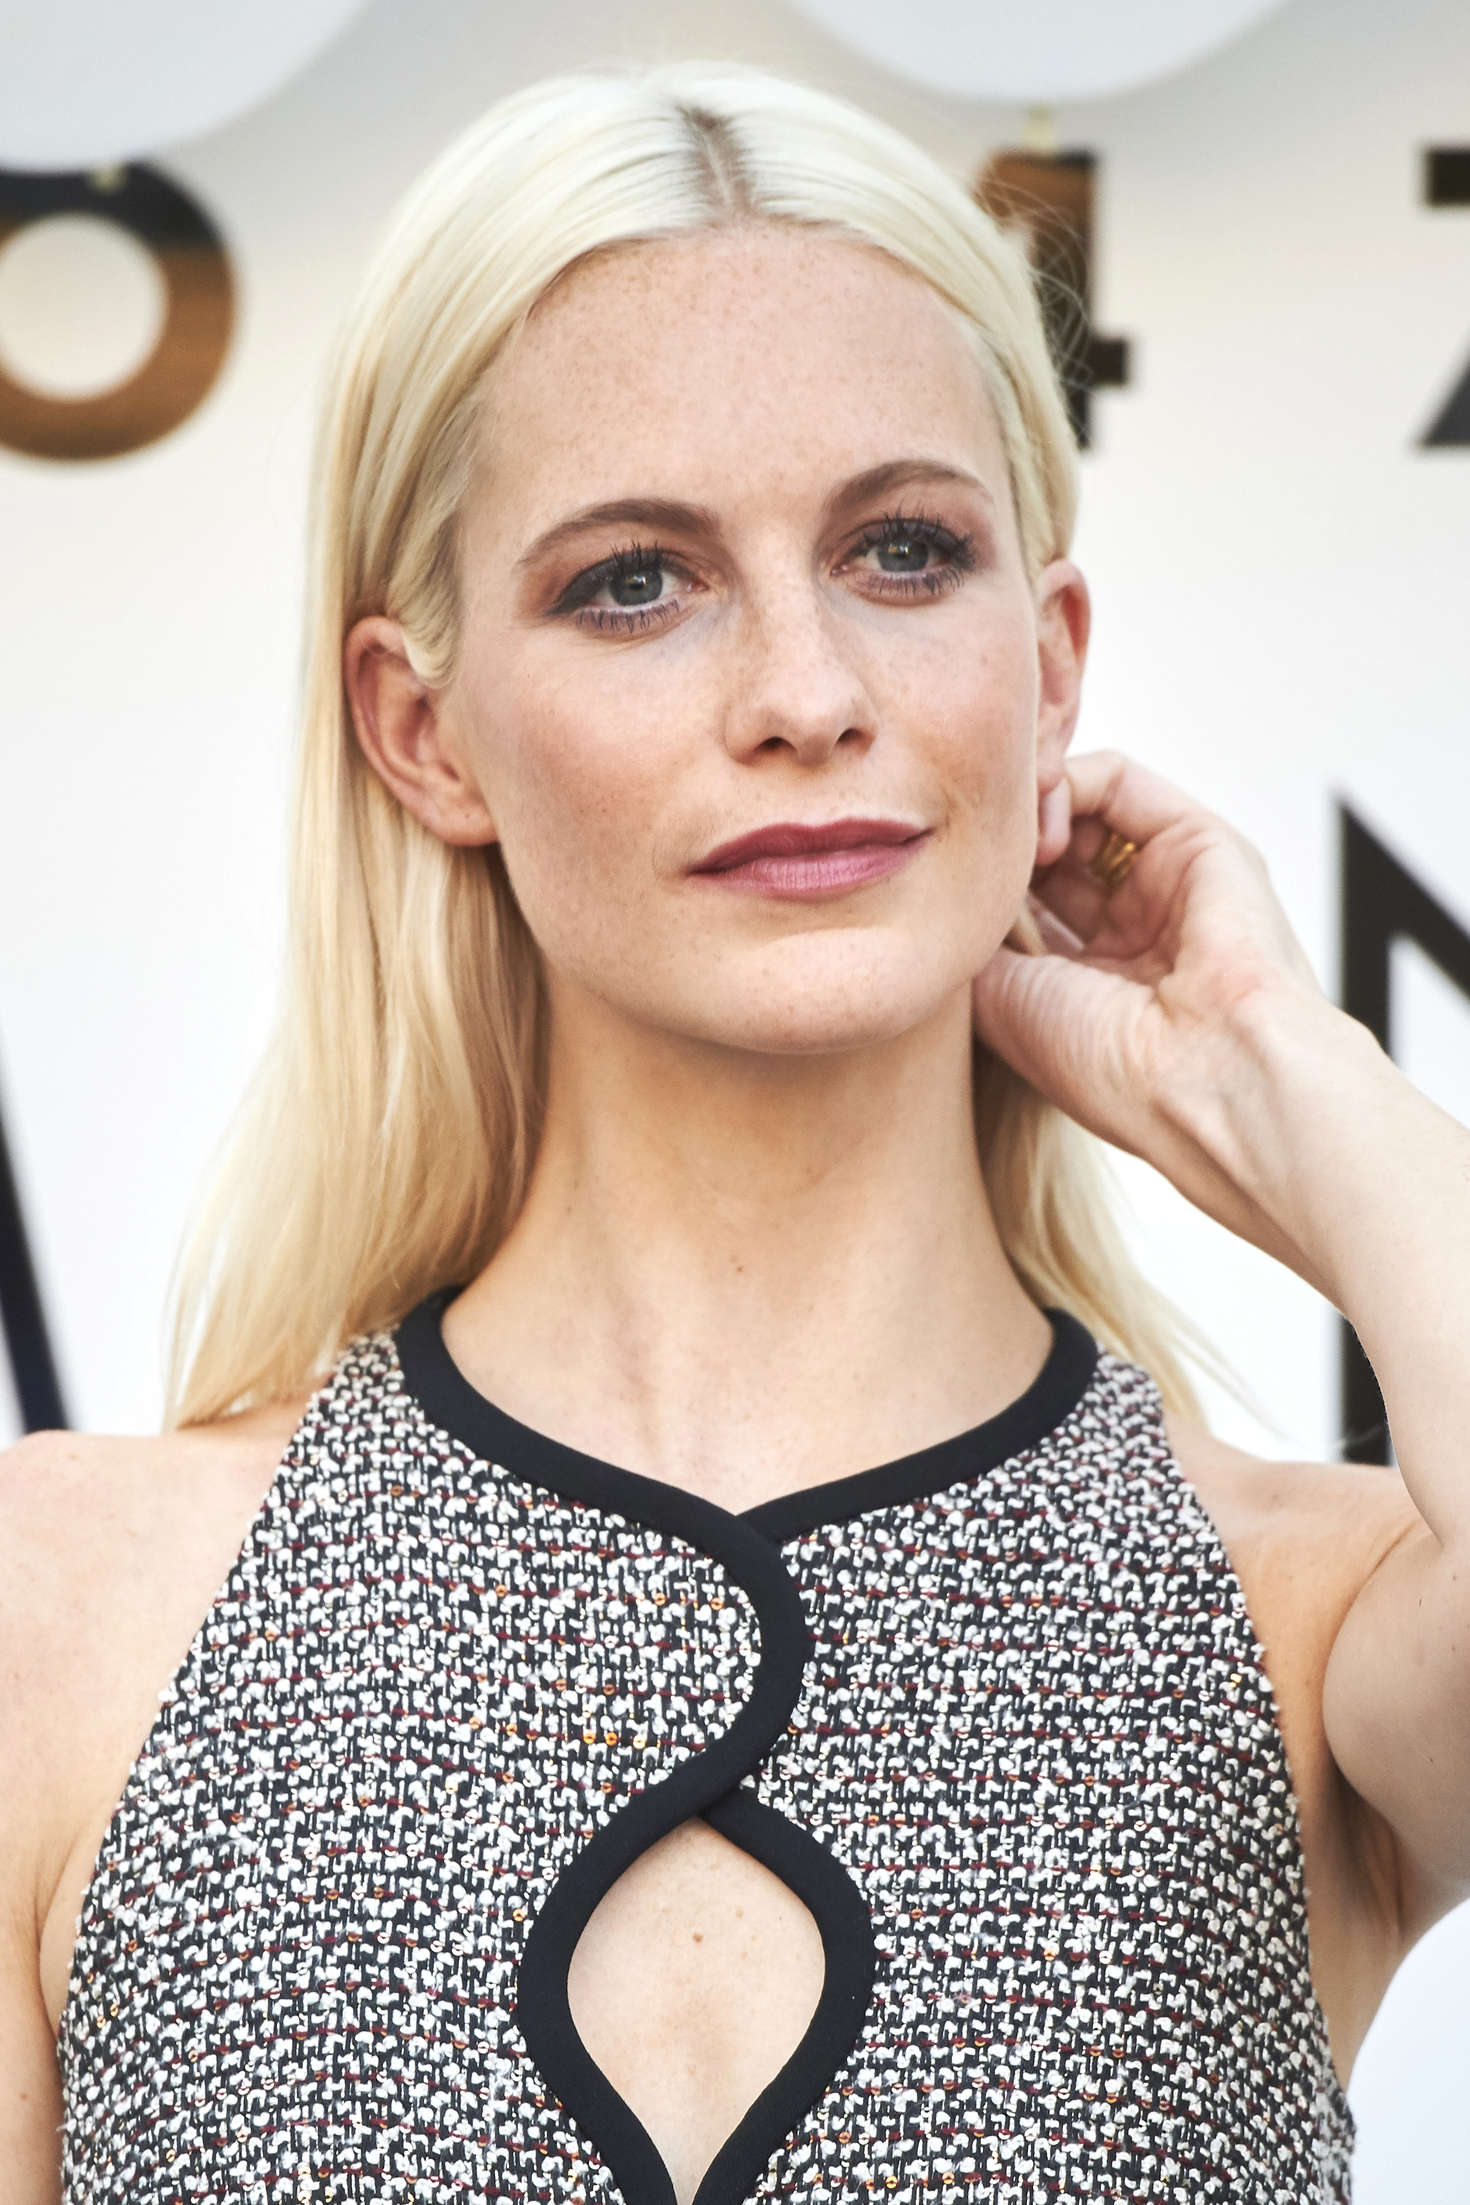 pics Poppy delevingne see through 47 Photos